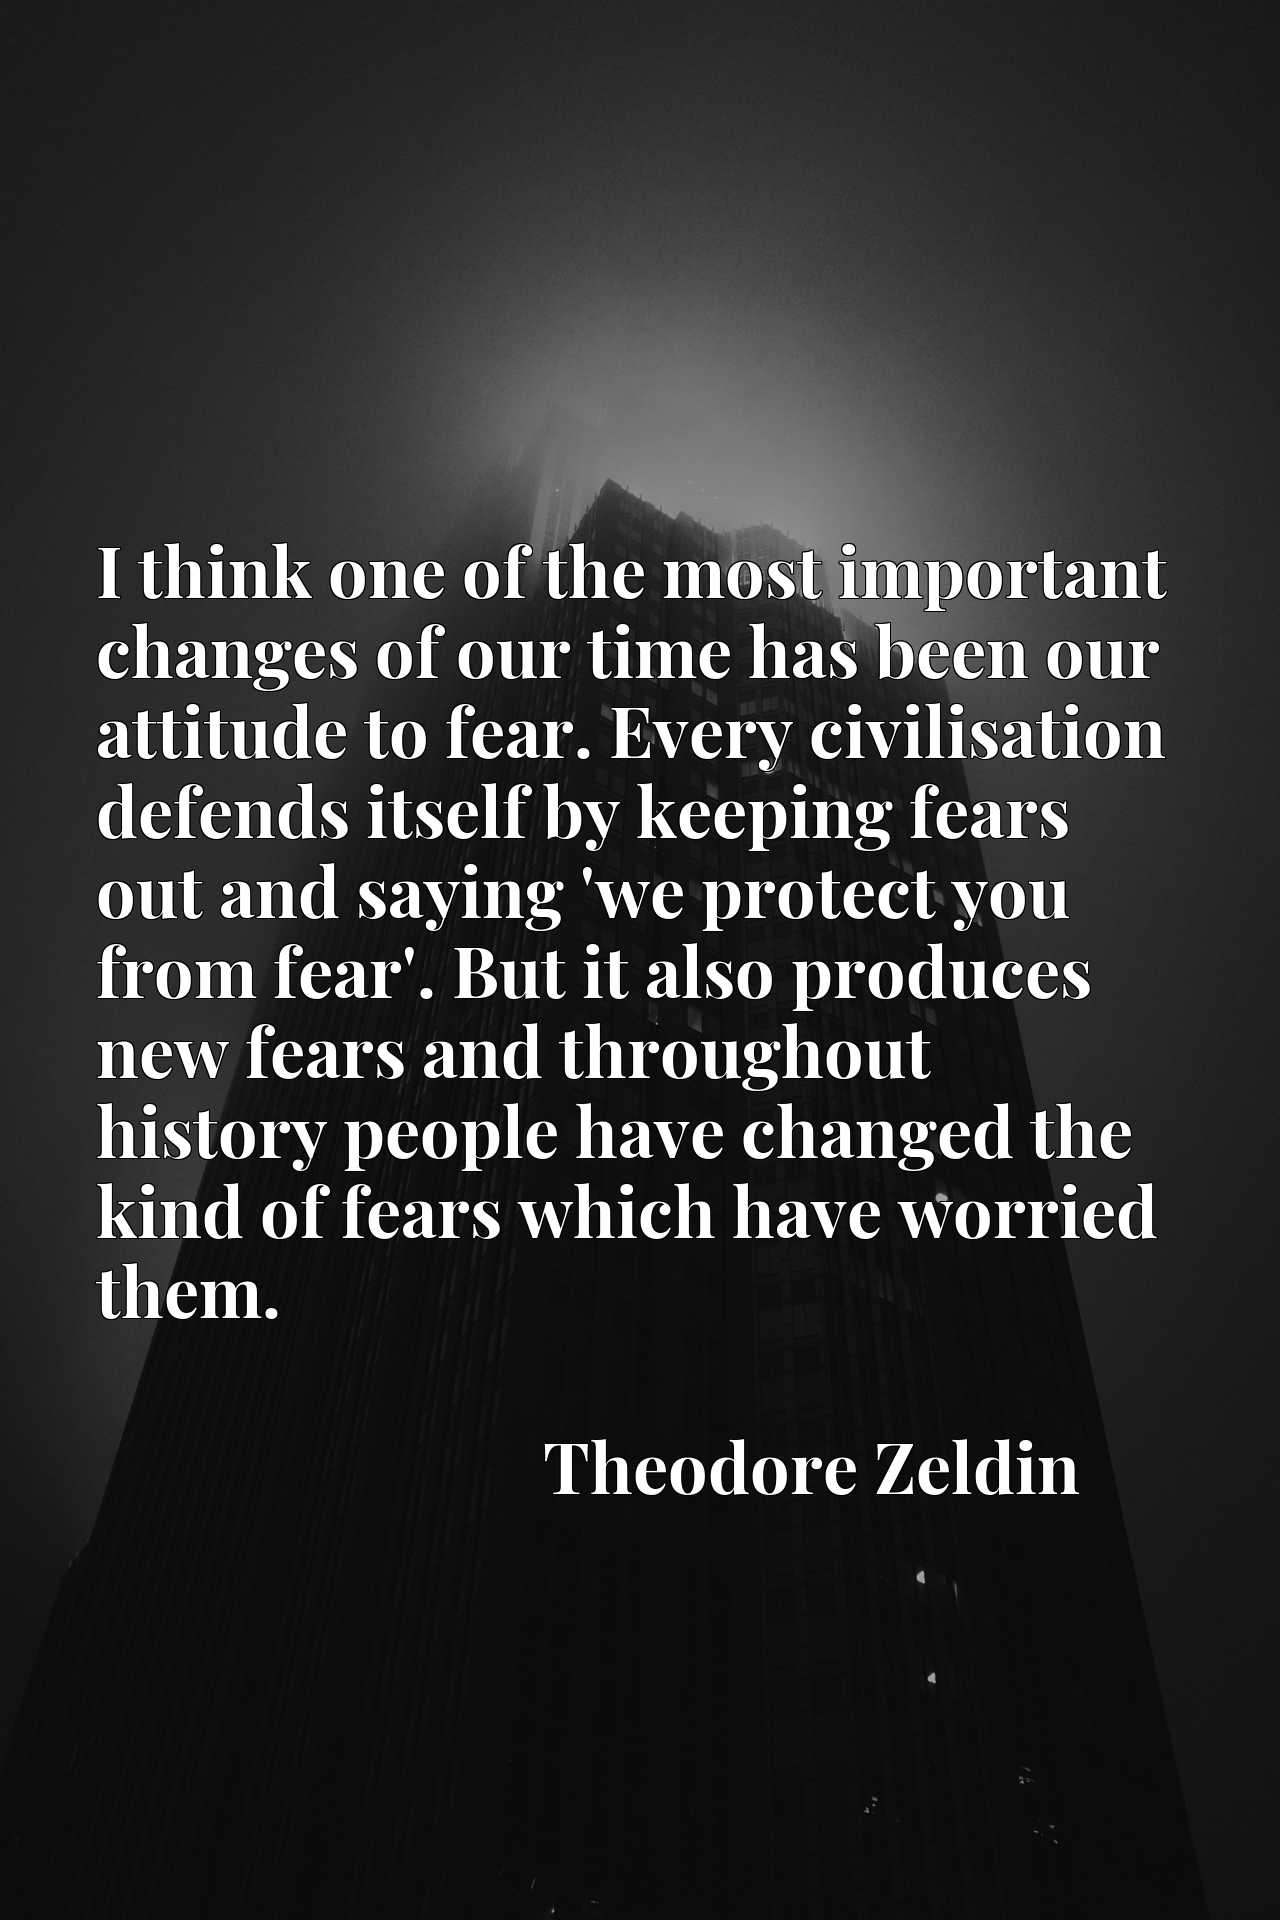 I think one of the most important changes of our time has been our attitude to fear. Every civilisation defends itself by keeping fears out and saying 'we protect you from fear'. But it also produces new fears and throughout history people have changed the kind of fears which have worried them.